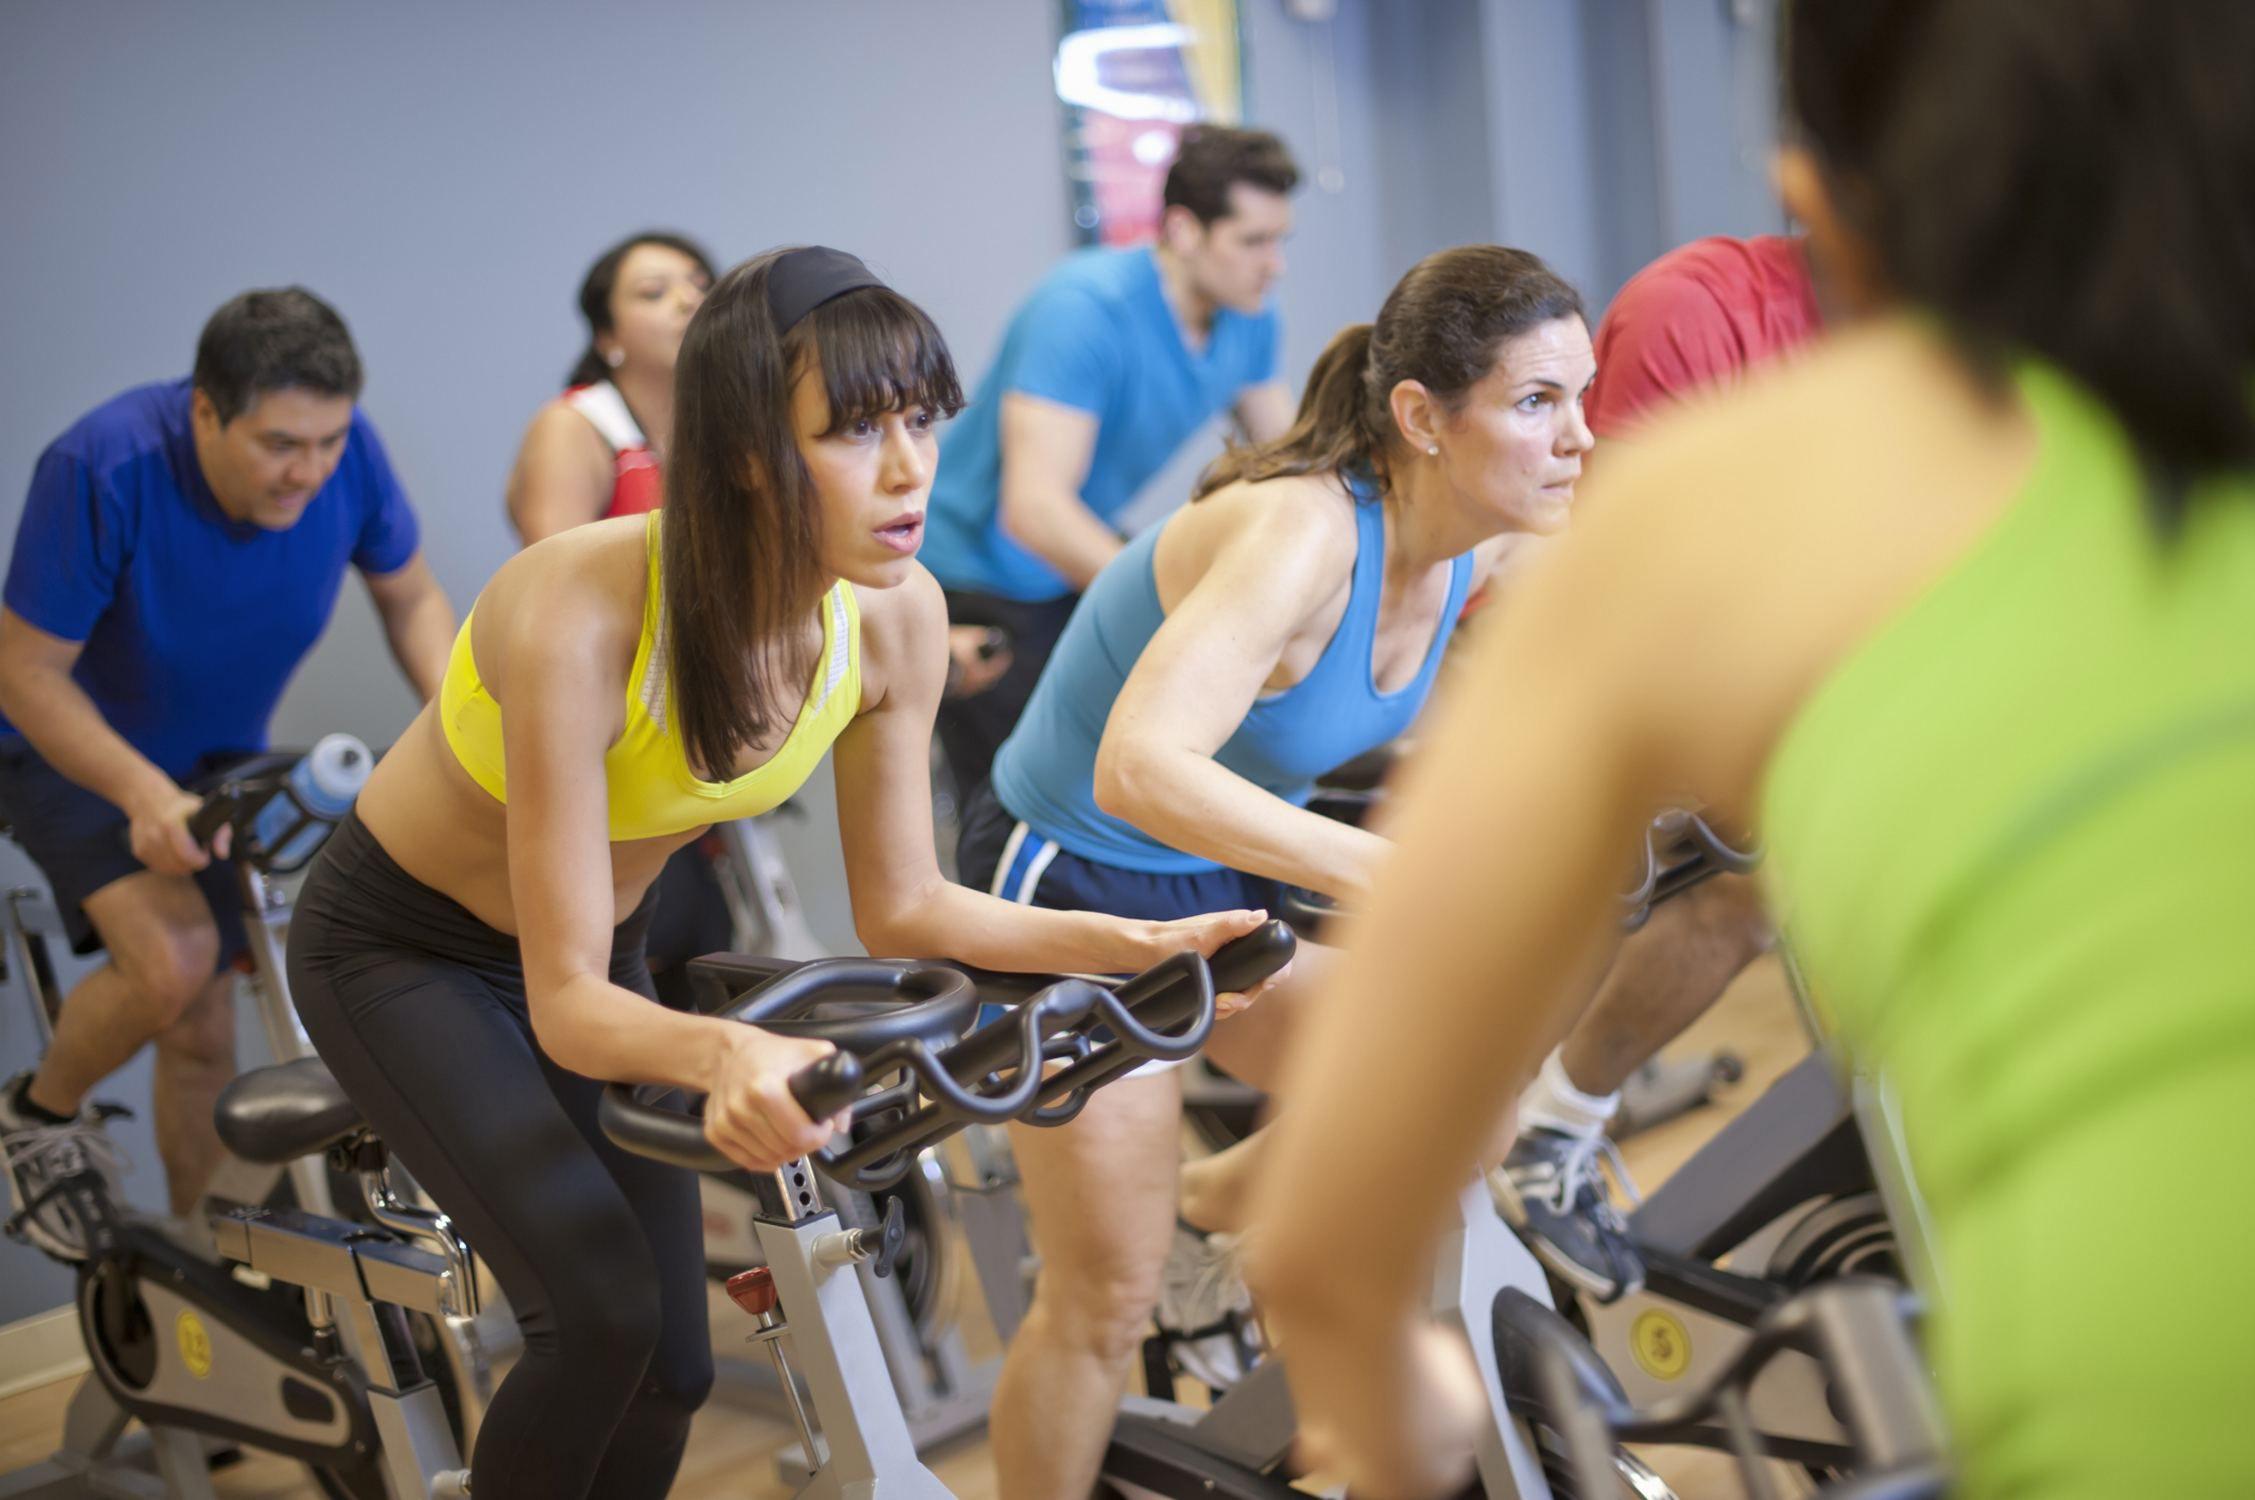 8 Tips to Lose Weight With Indoor Cycling